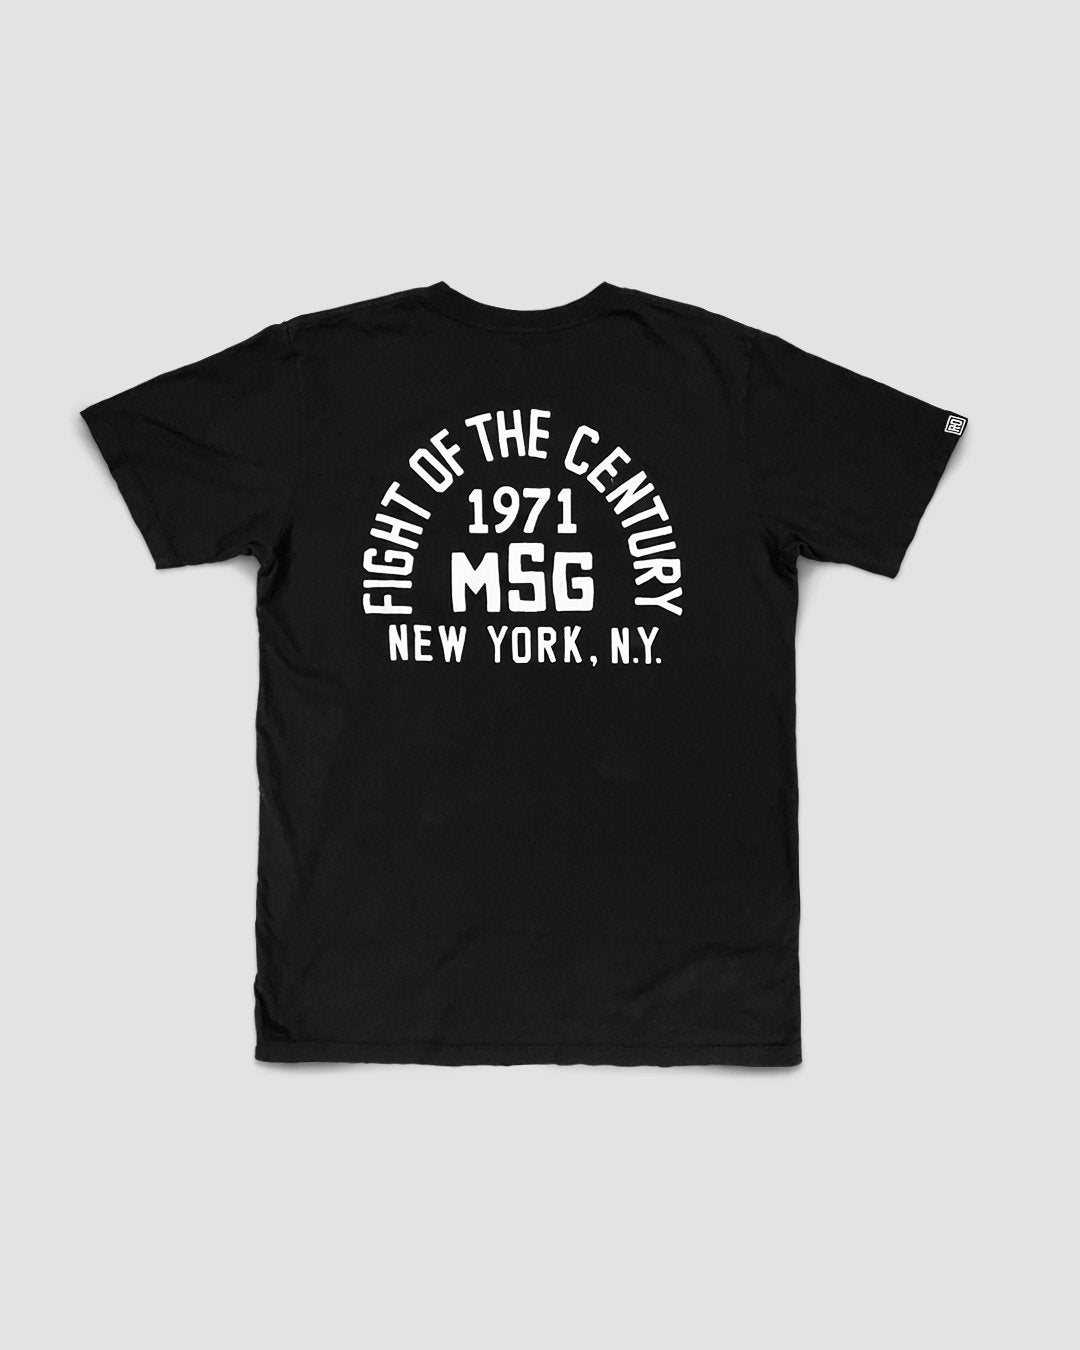 FOTC - Ali 1971 MSG Tee - Roots of Inc dba Roots of Fight